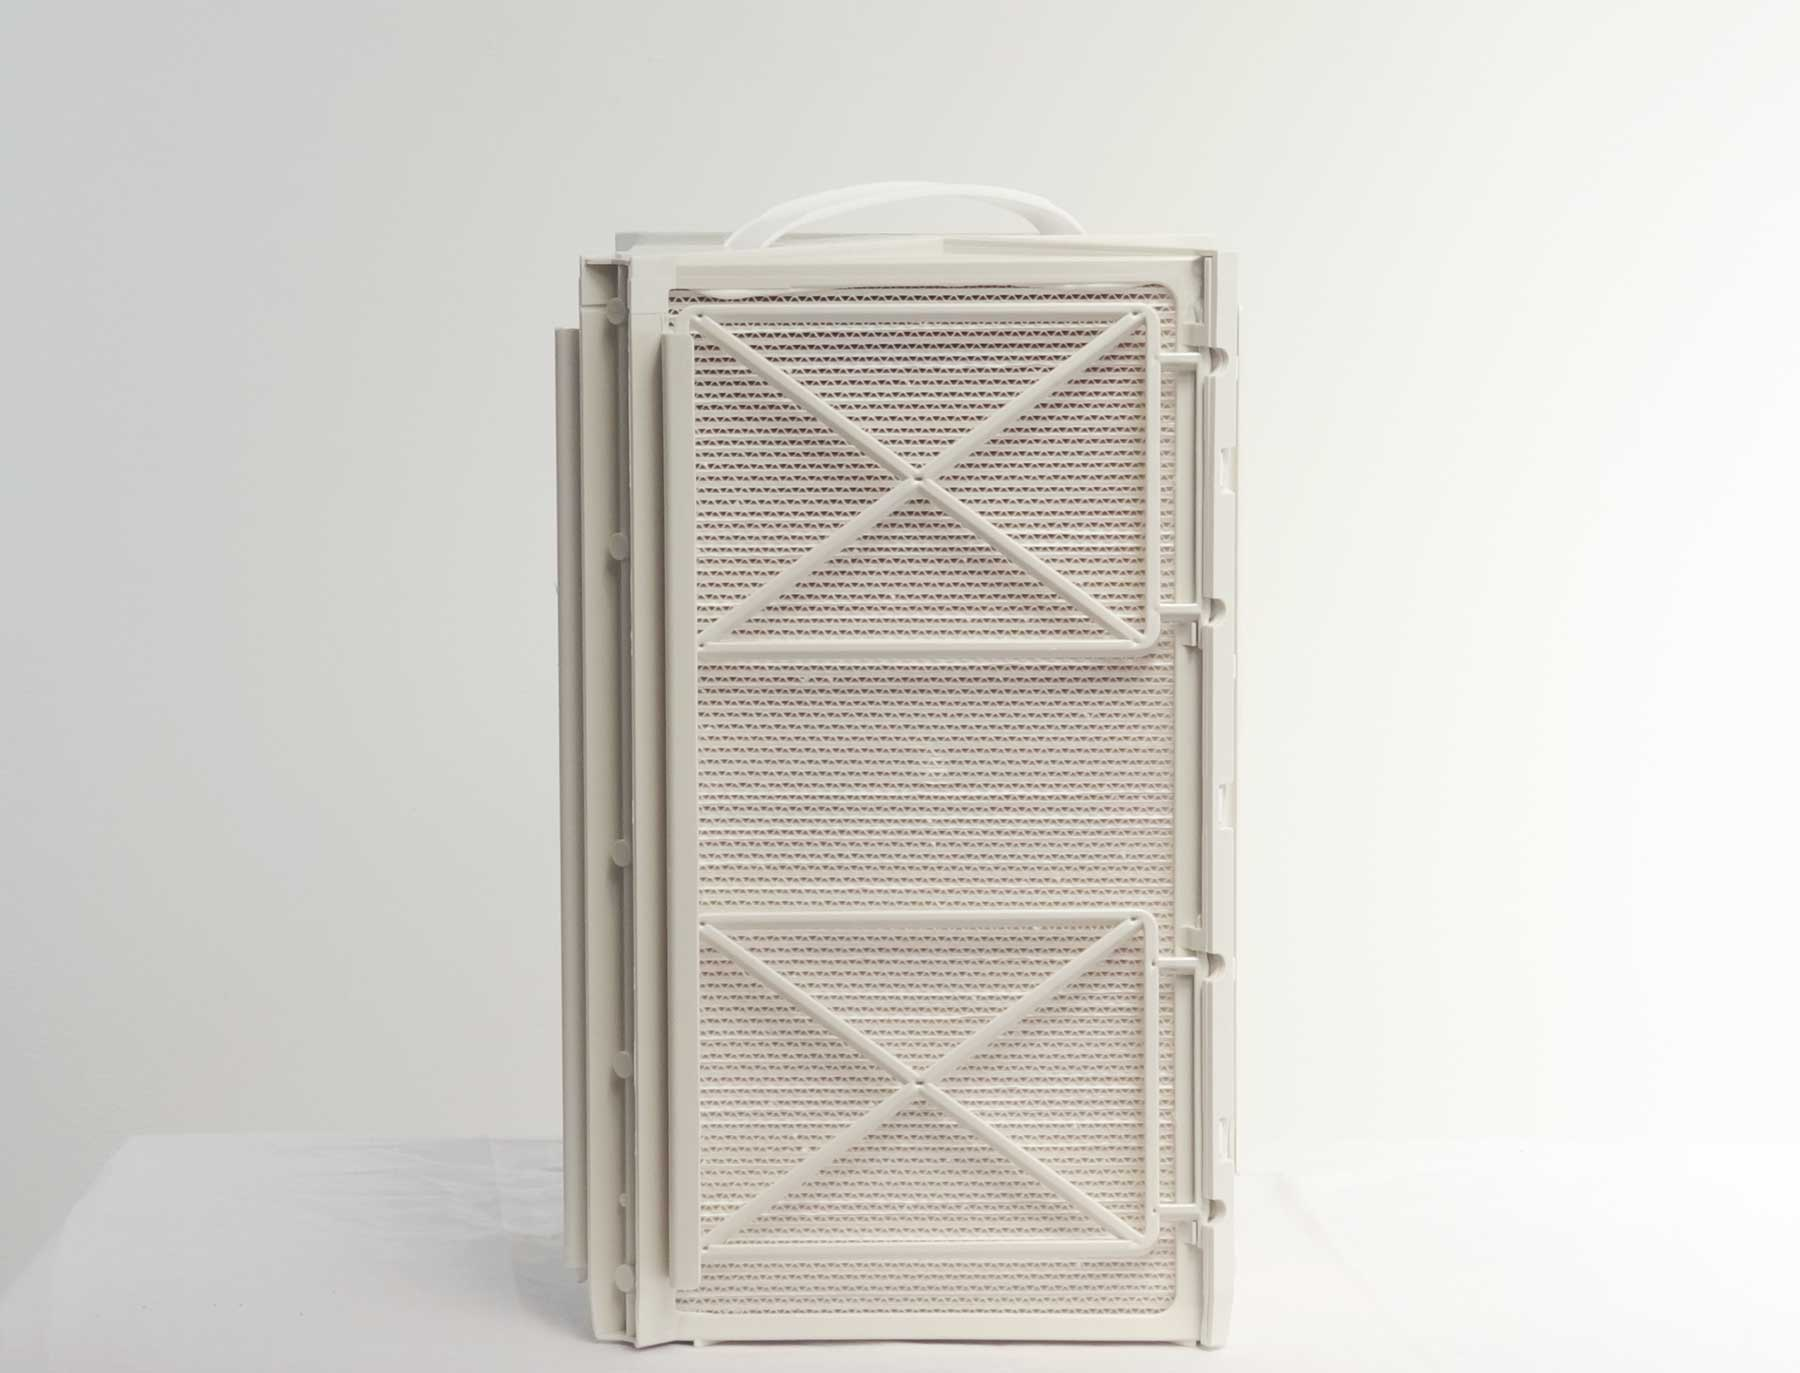 Mitsubishi Electric Air Conditioning Spare Part 221667 Lossnay Core For  LGH-100/200RX5-E